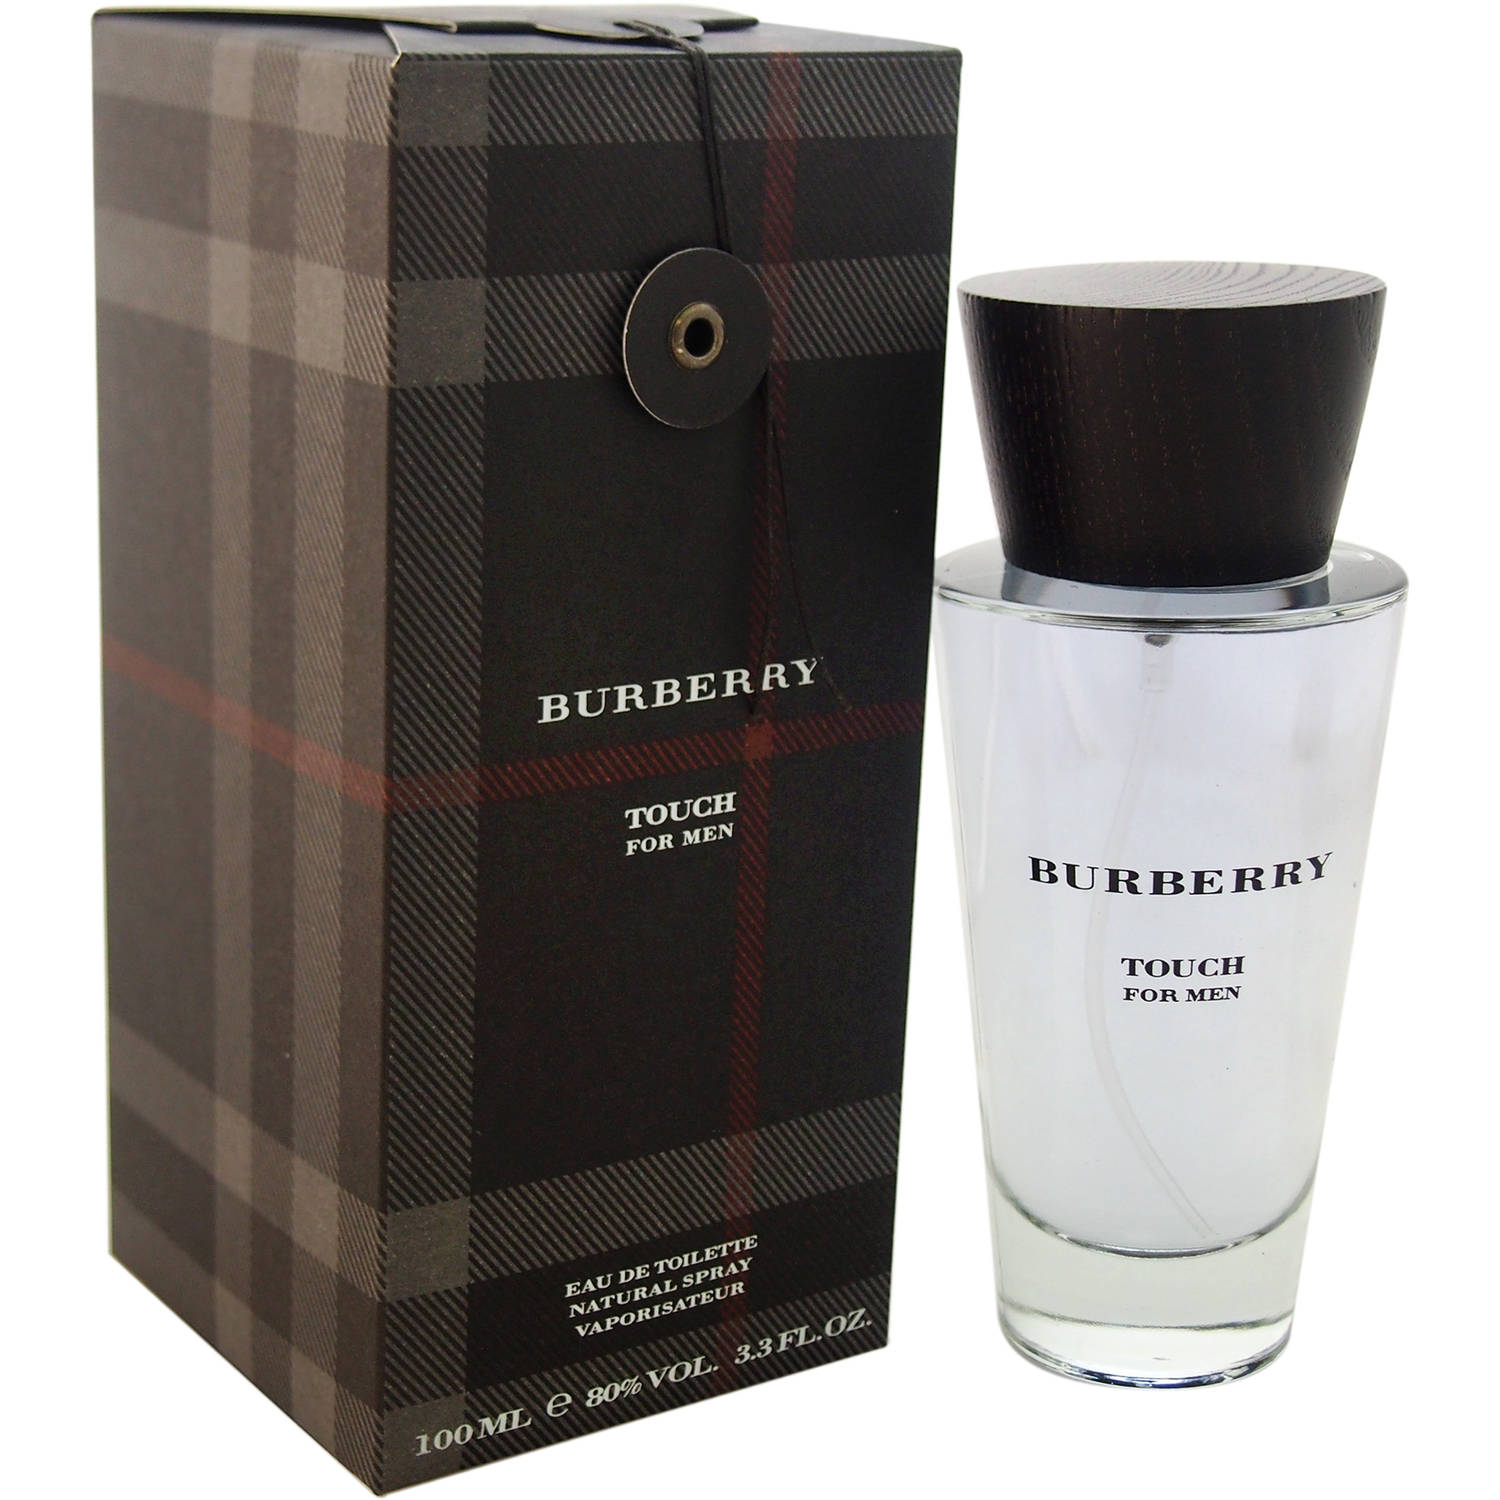 Burberry Touch for Men Eau de Toilette Spray, 3.3 fl oz